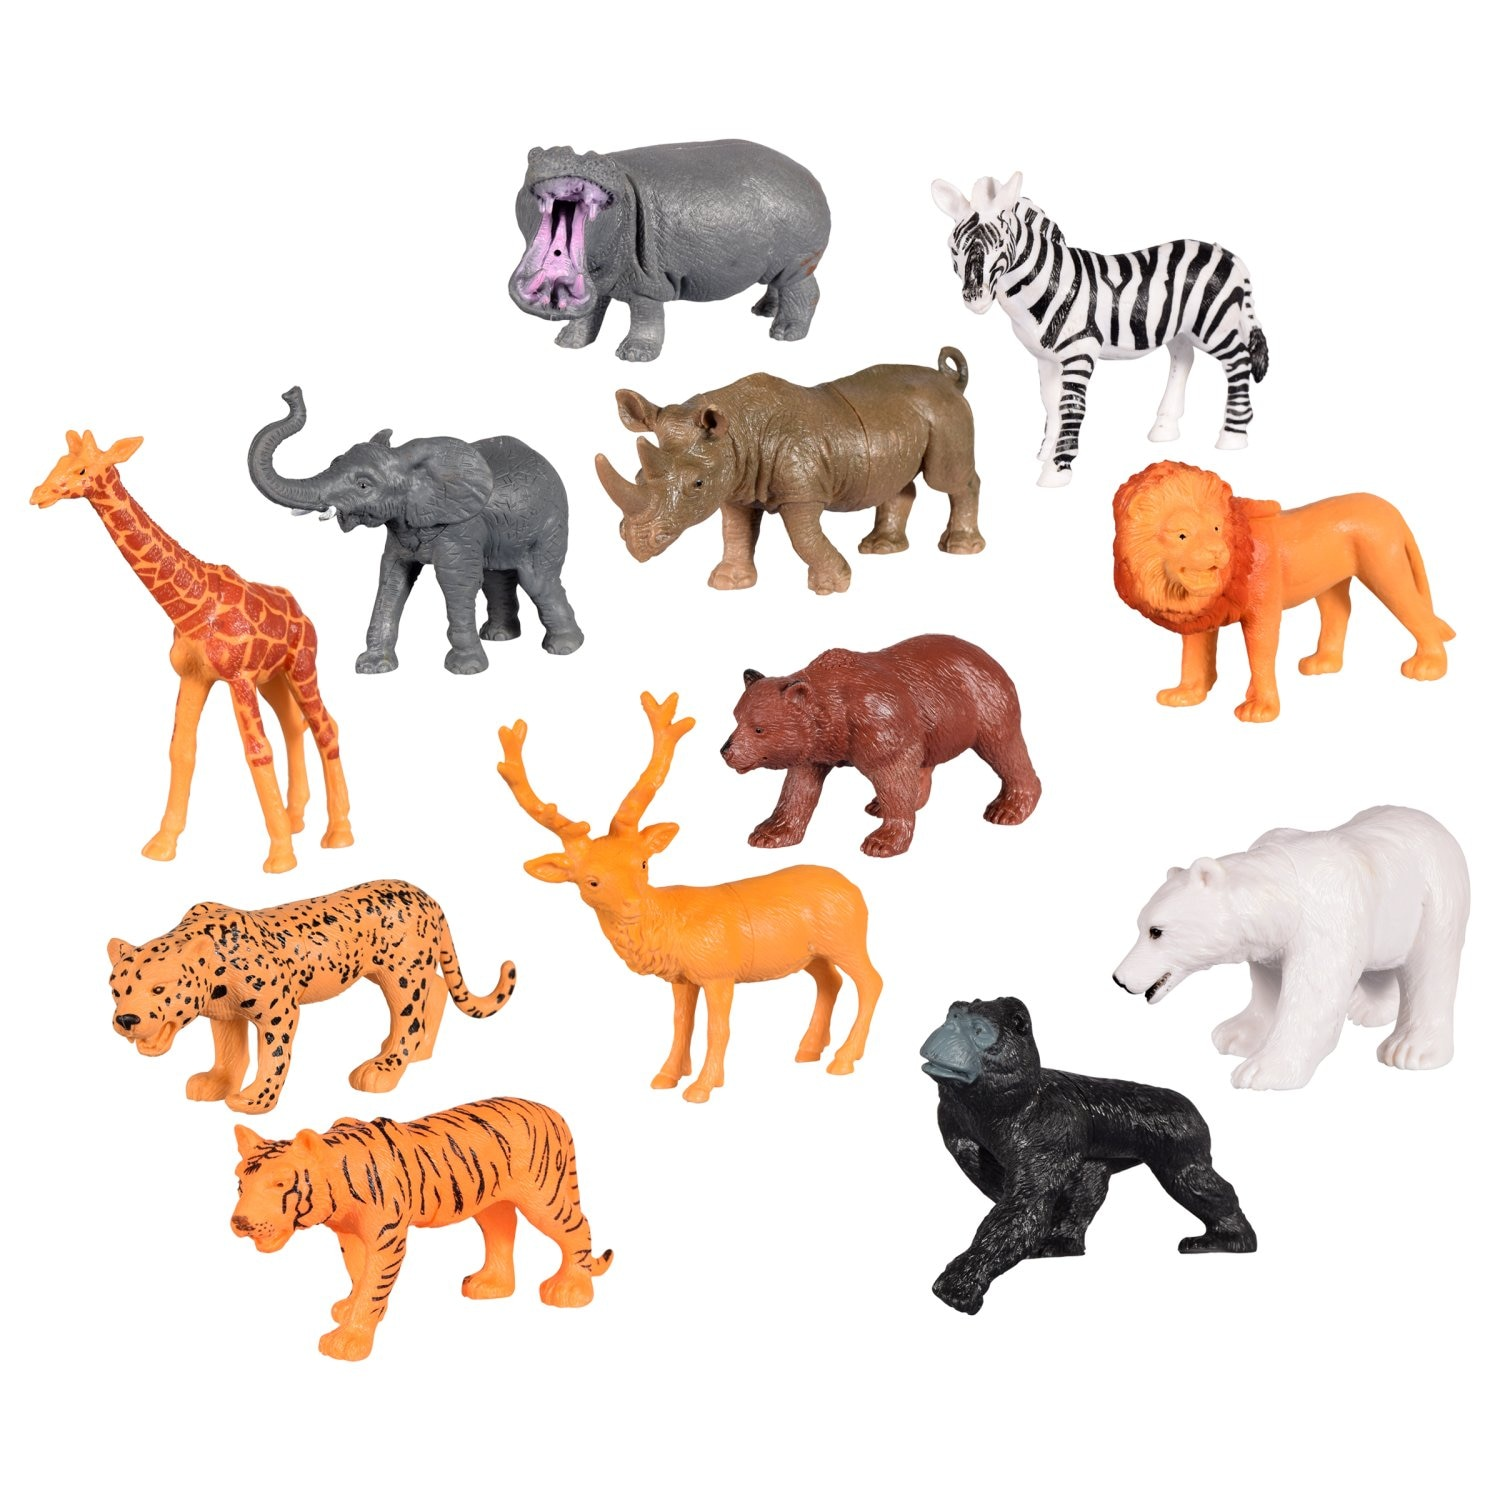 Loyal Wild Animals Toy Model Elephant Lion Zebra Giraffe Jungle Animals Action Figures Collection Model Decoration Baby Children Gift Volume Large Toys & Hobbies